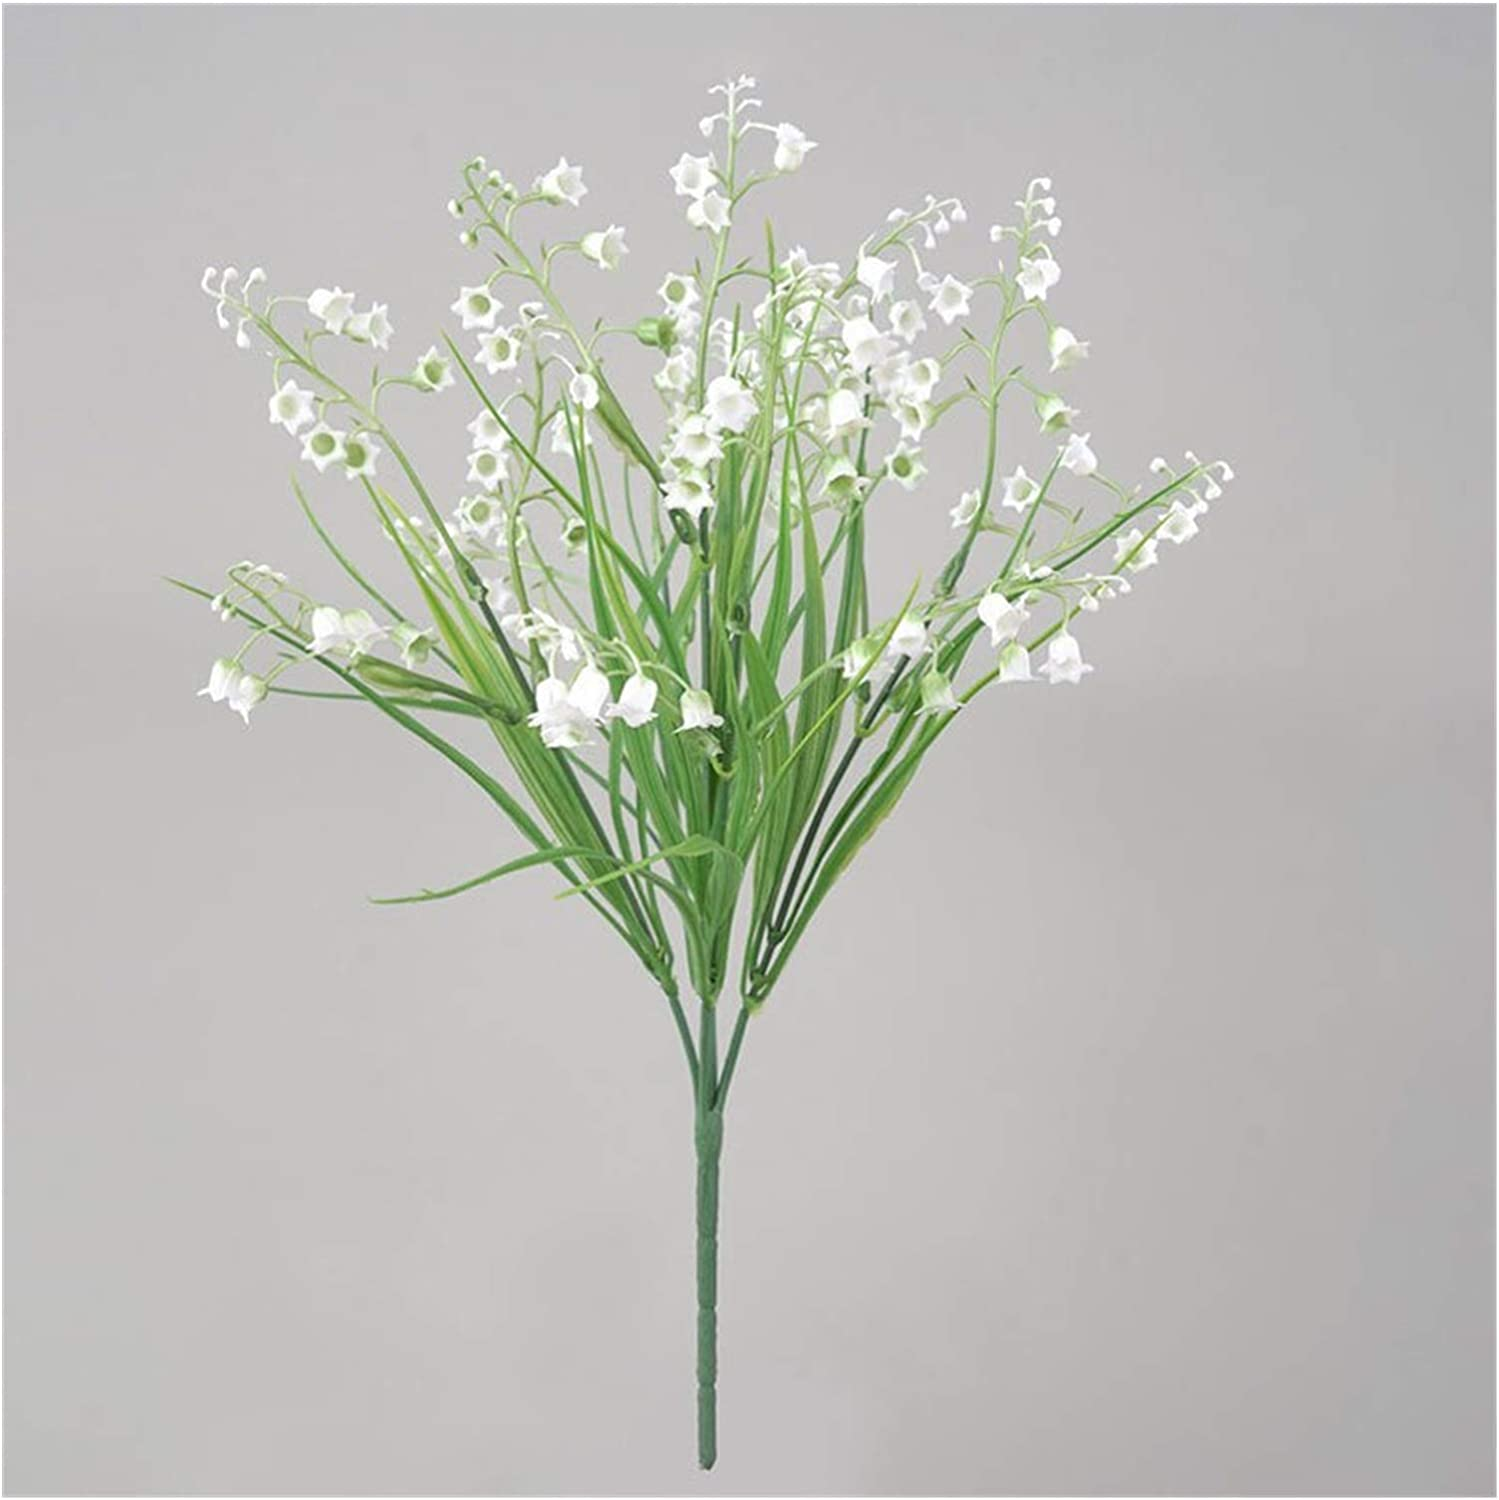 YSCSPQA Dealing full price Deluxe reduction Artificial Flowers 5 Pla Branches Flower Fake